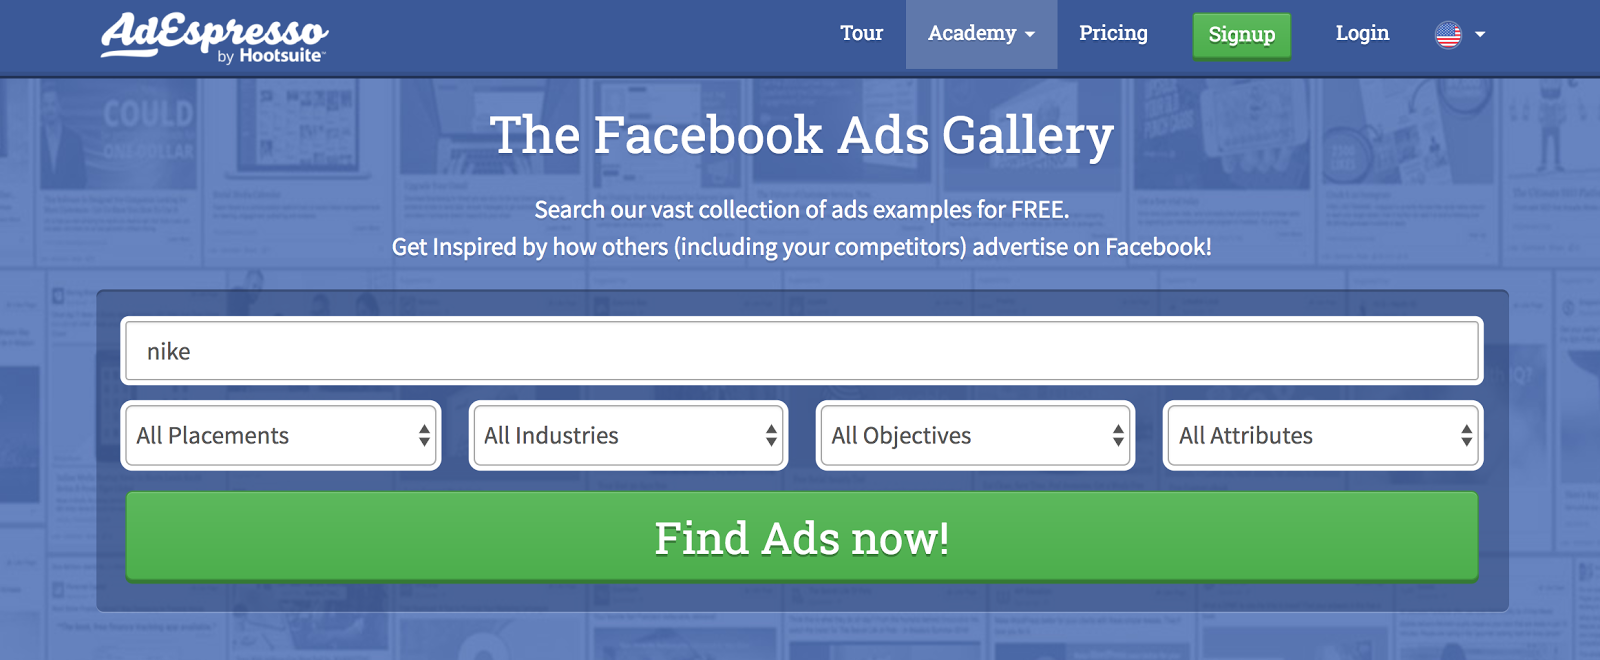 AdEspresso's Ads Gallery includes thousands of ads